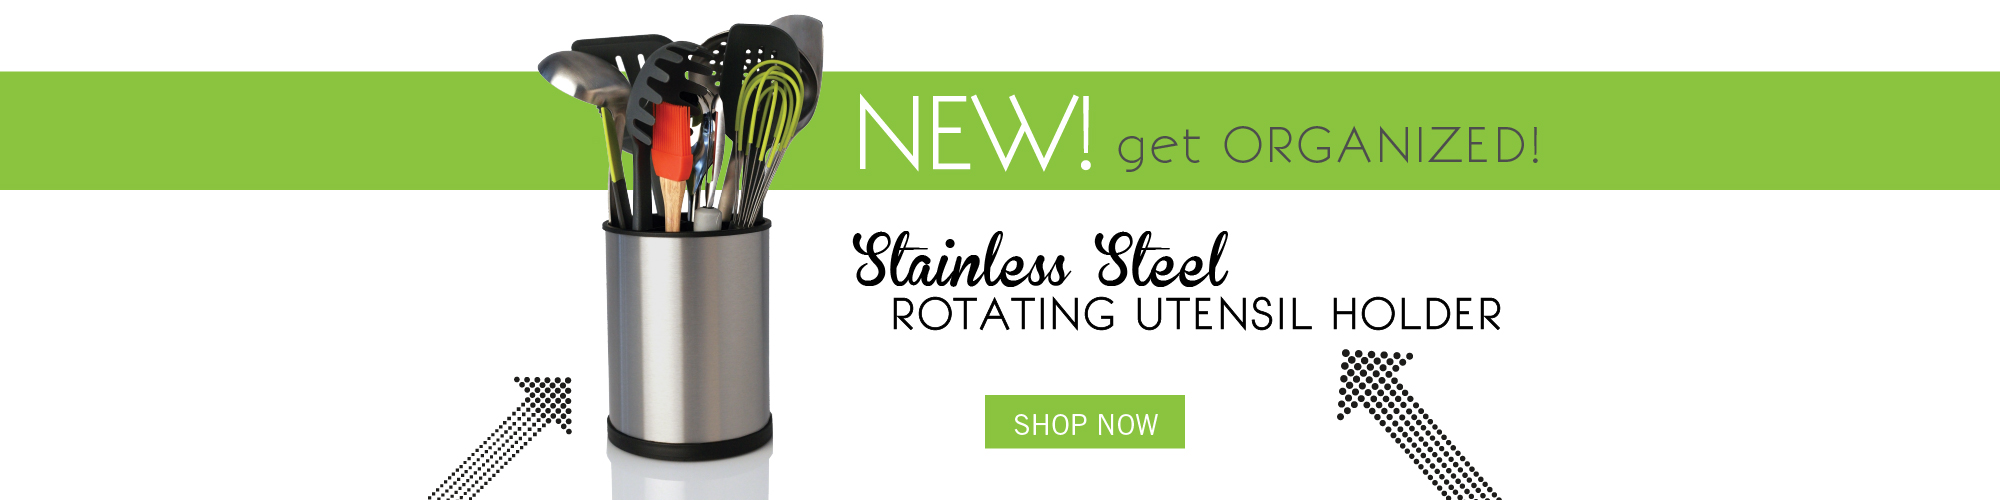 New Stainless Steel Utensil Holder